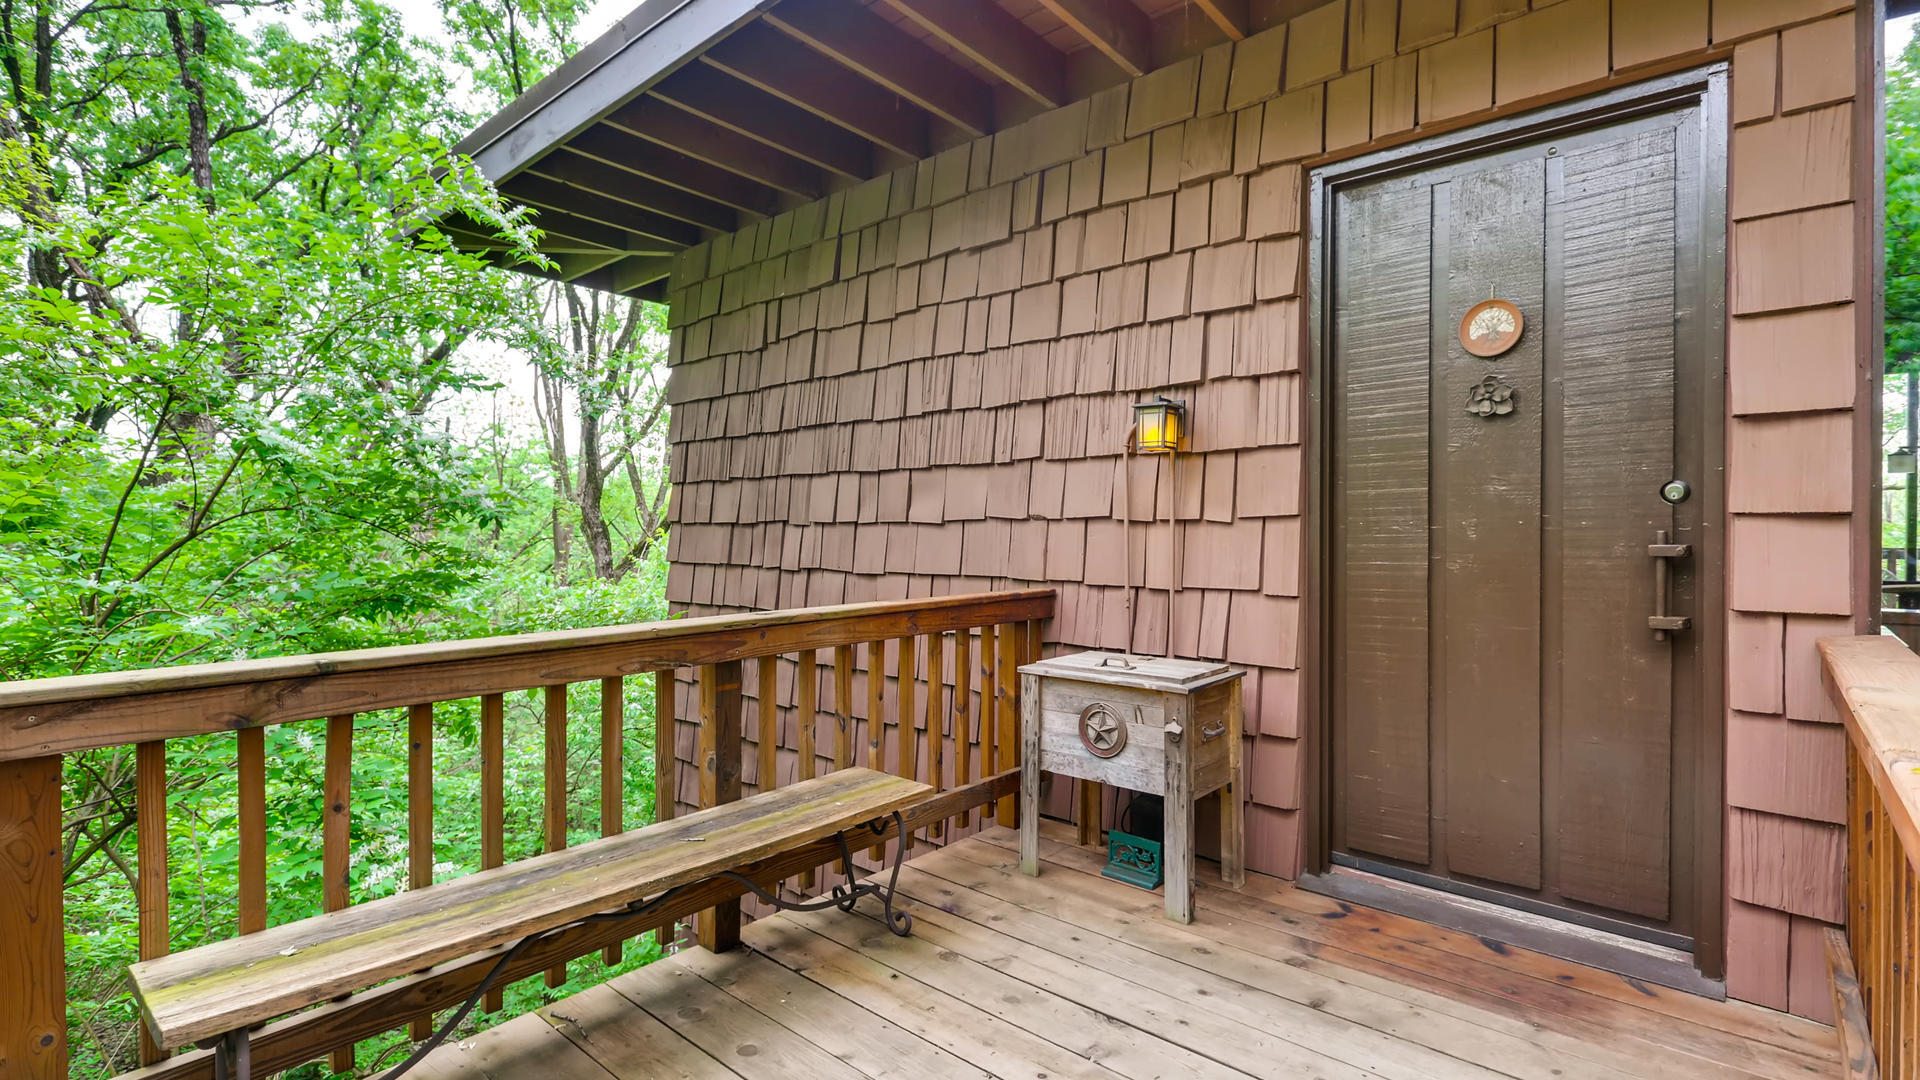 Photo for 19 Circle Drive, ALGONQUIN, IL 60102 (MLS # 10399098)